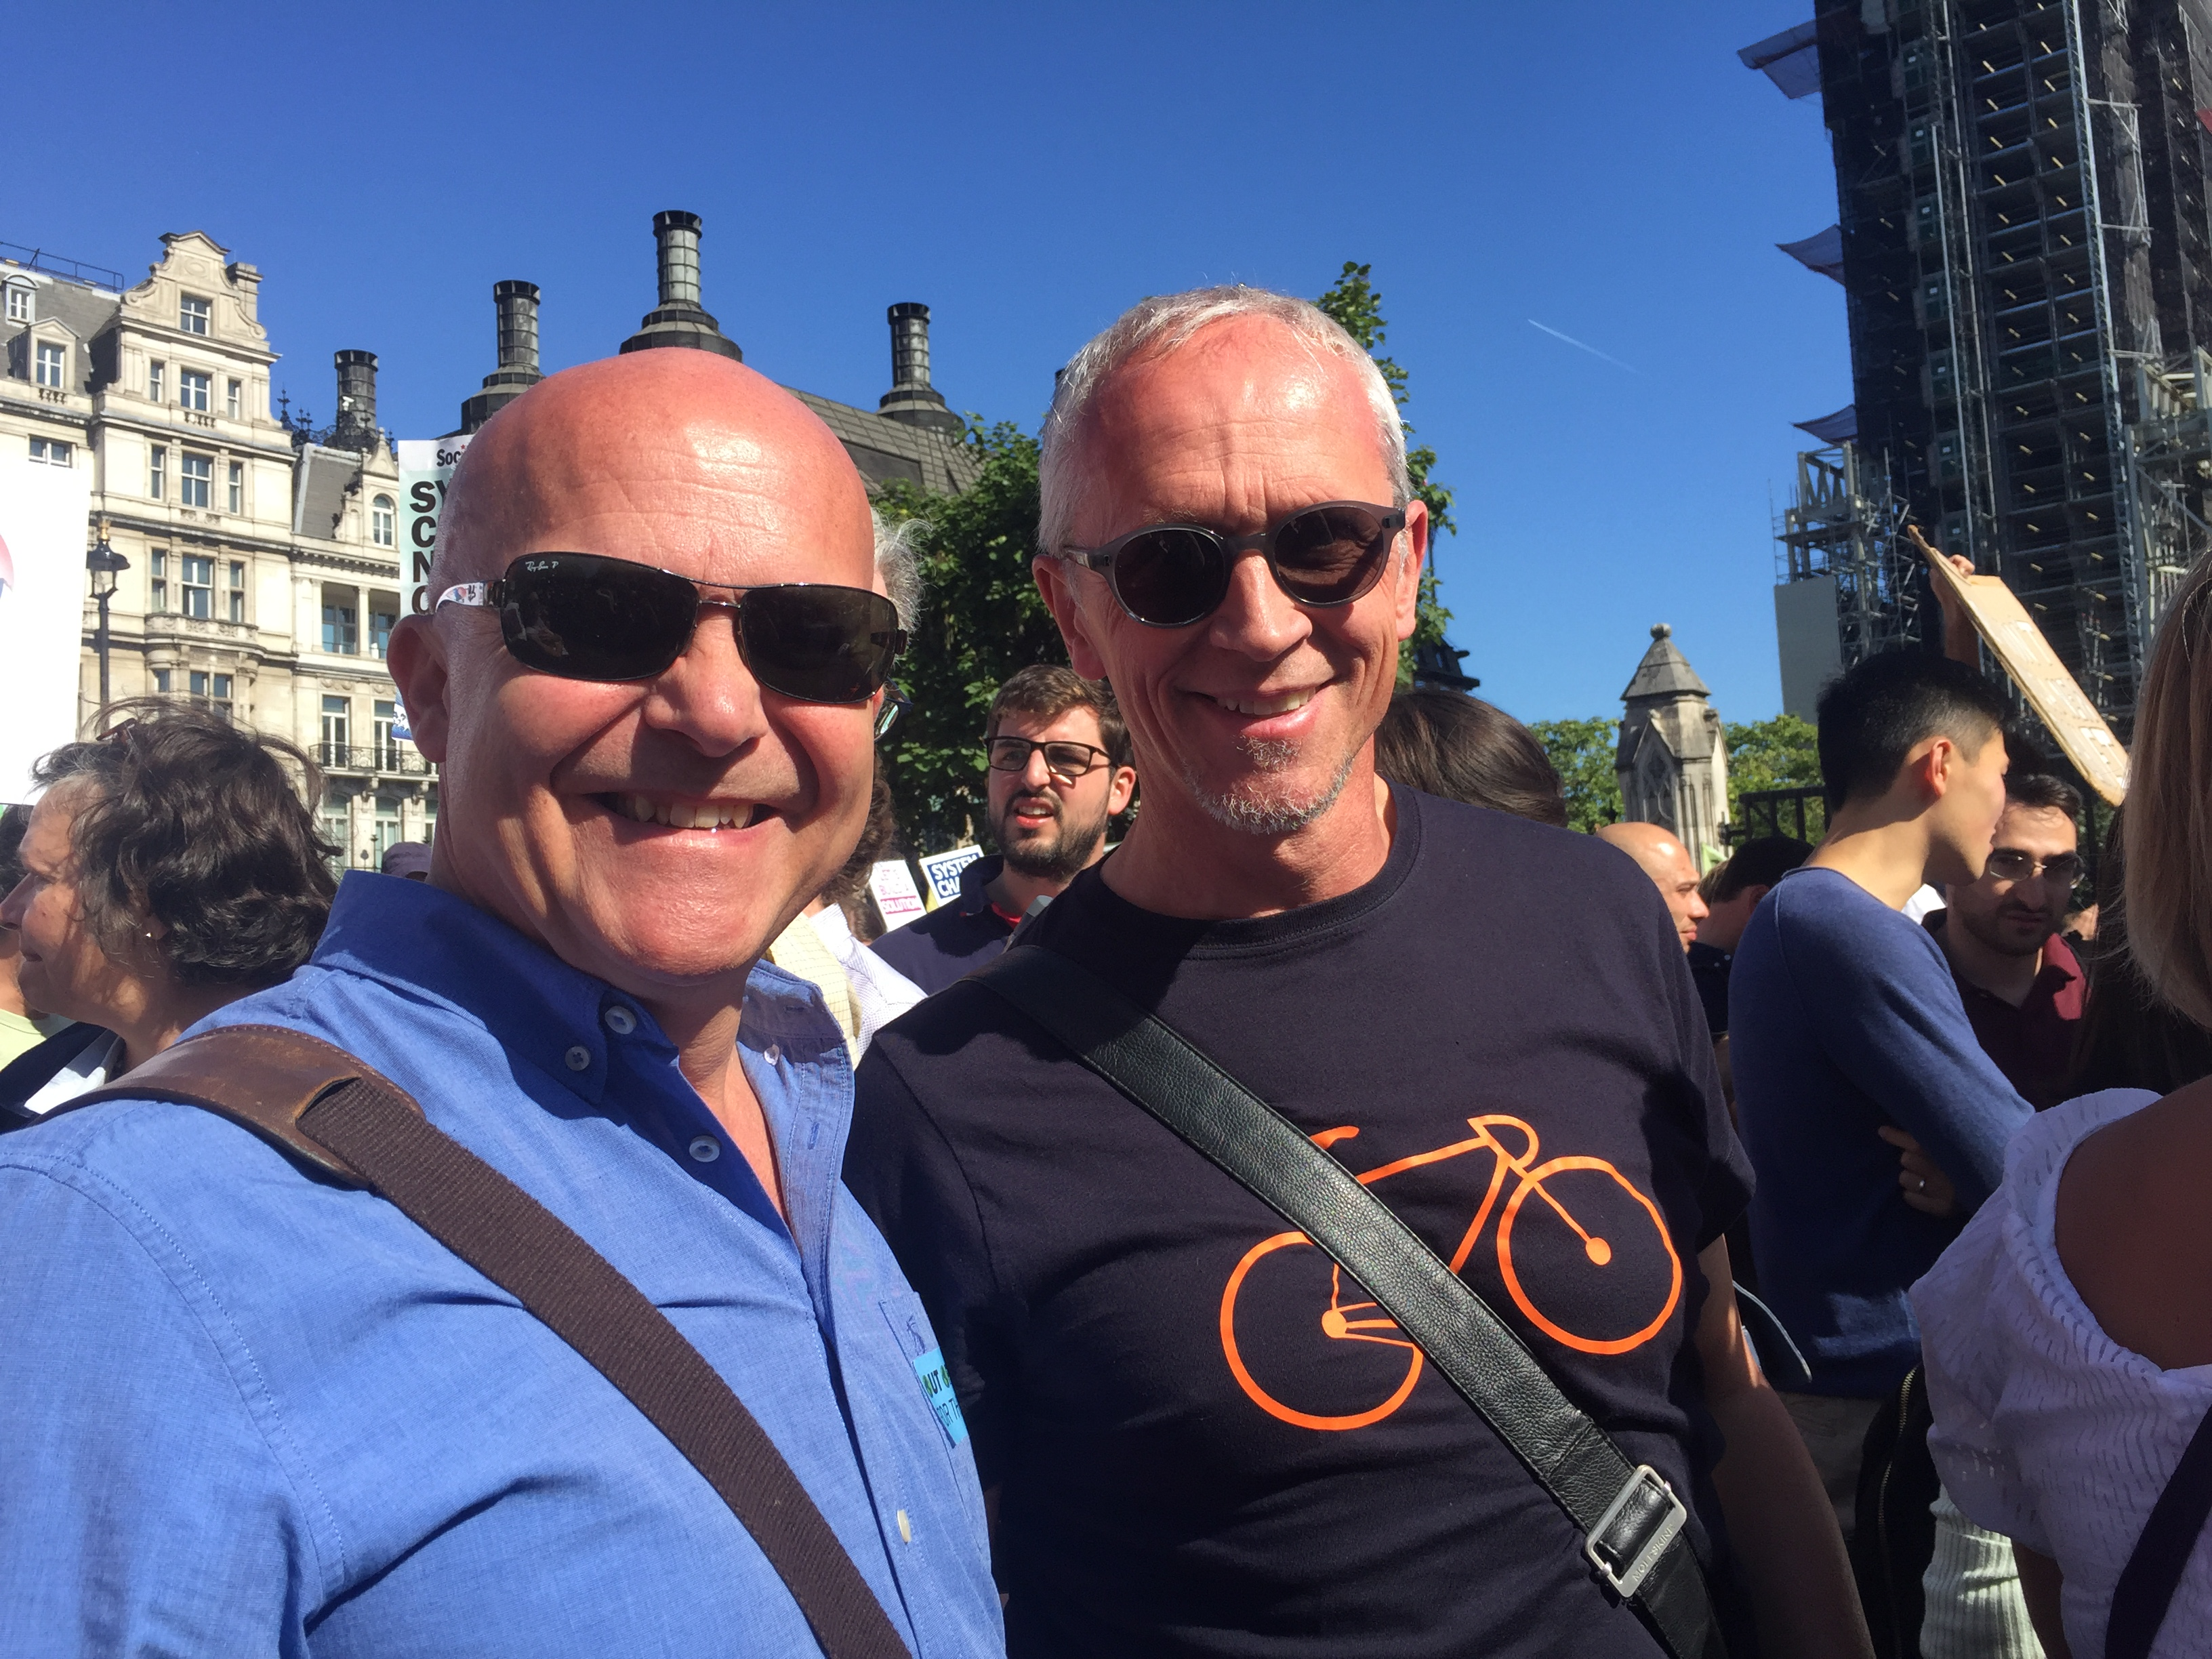 Argent's Peter Runacres, Senior Project Director, and Nick Searl, Partner, at the Climate Strike